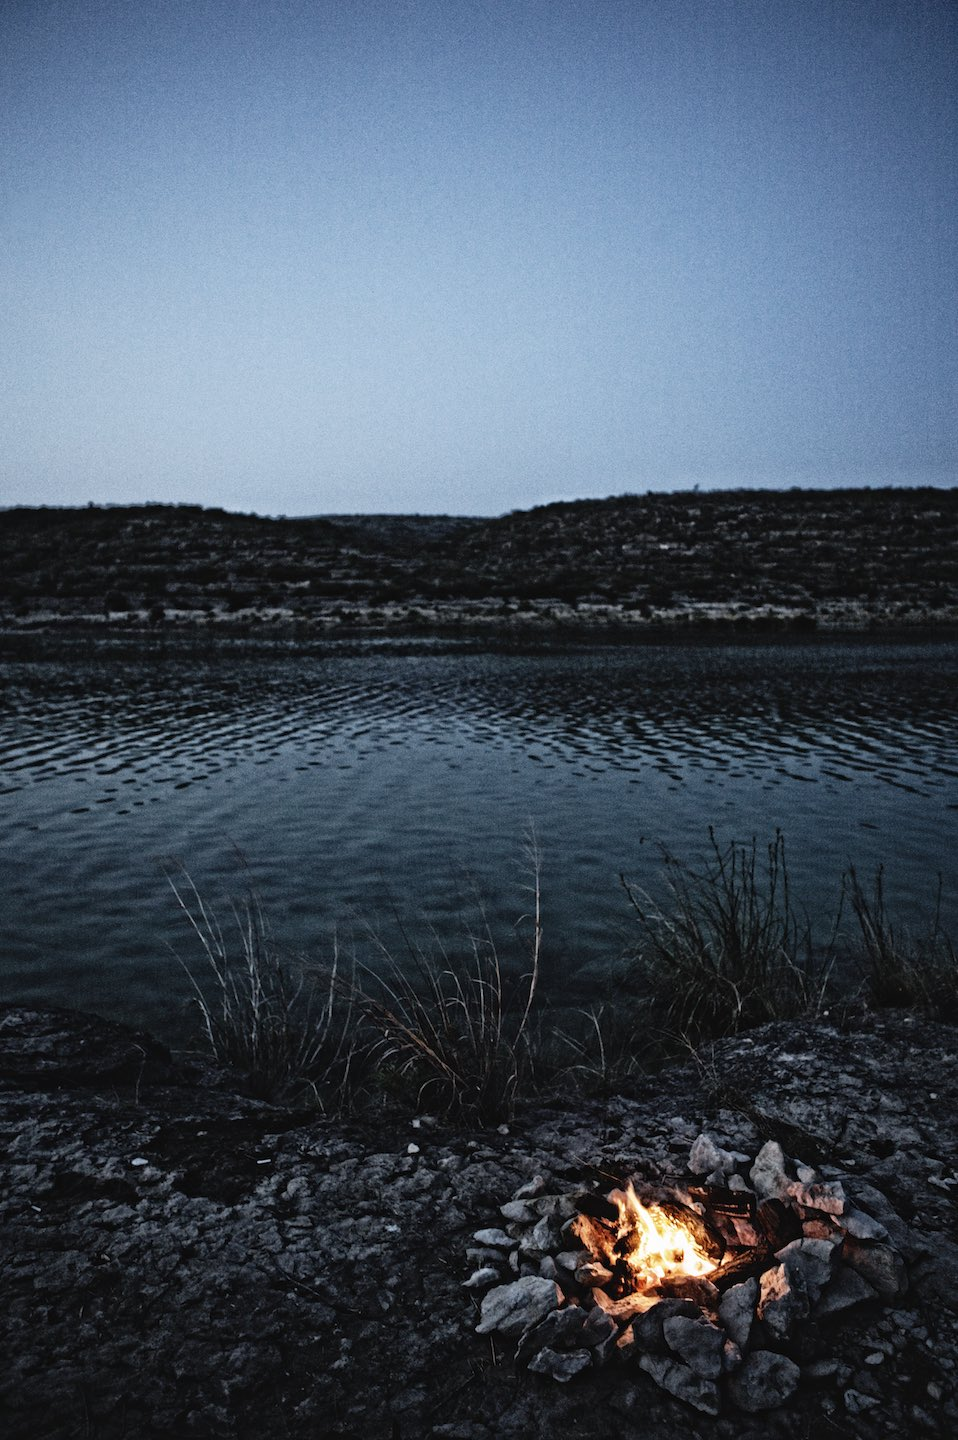 A small camp fire blazing next to a calm river at dusk.